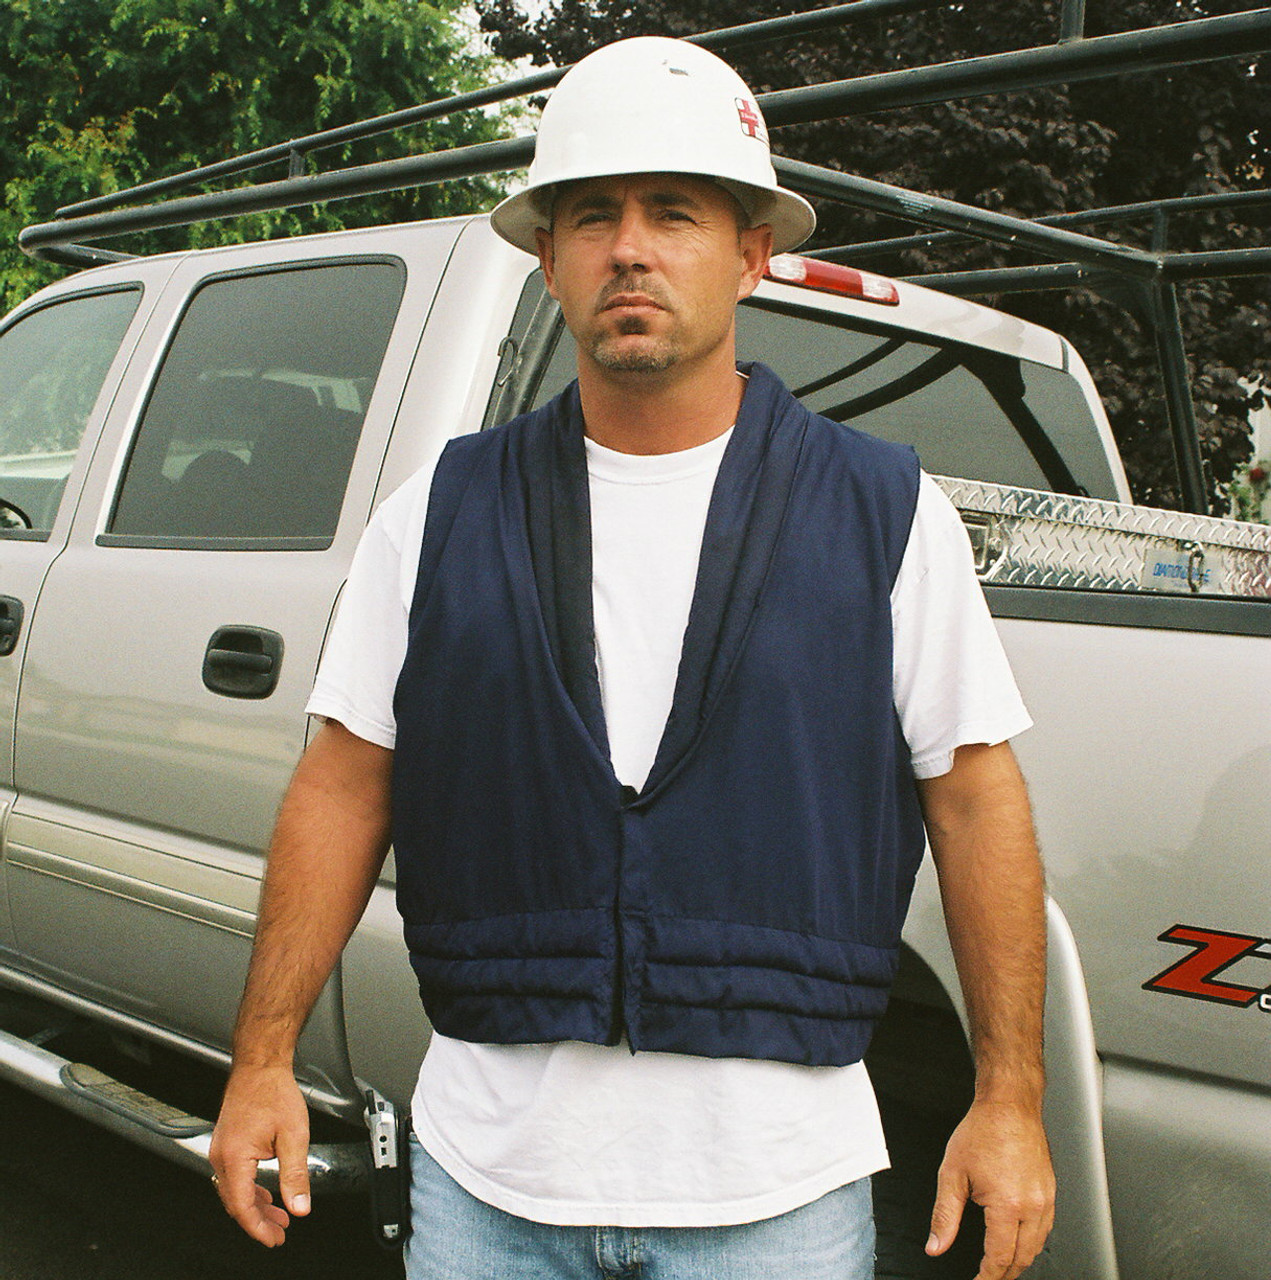 Cool vests by Polar-Products keep professionals cool on the hottest days.